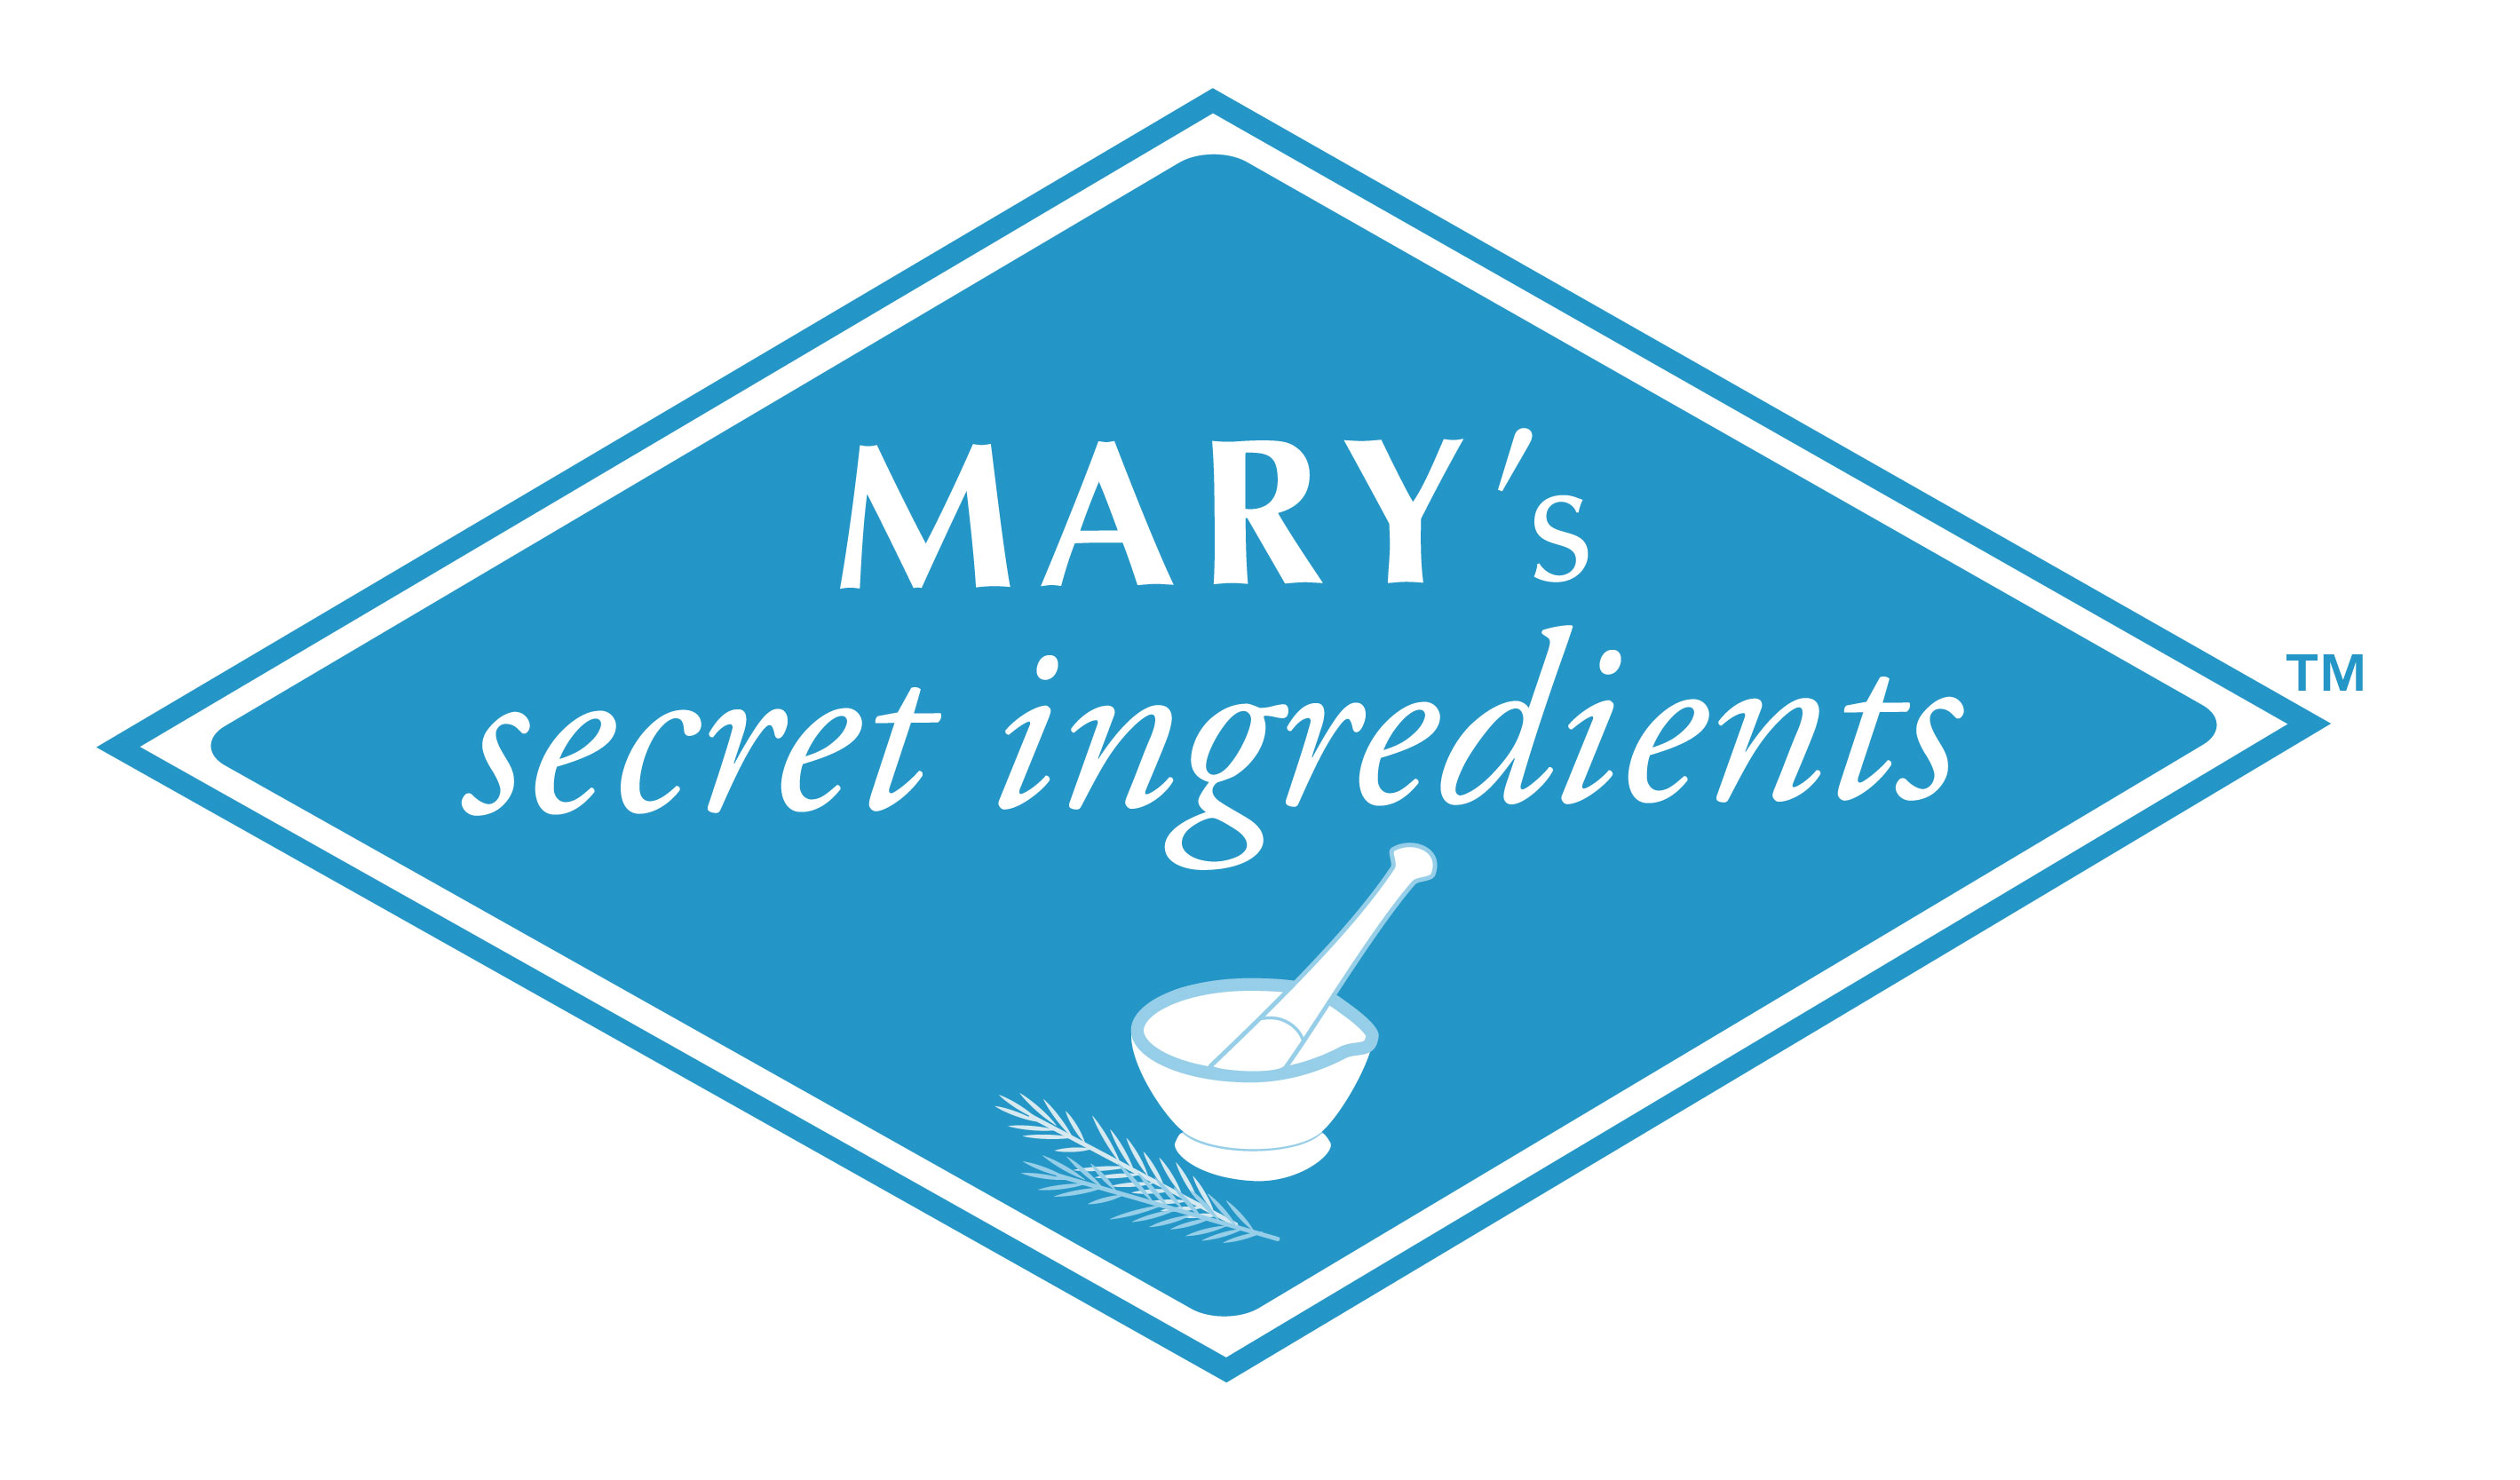 MARY's secret ingredients Logo